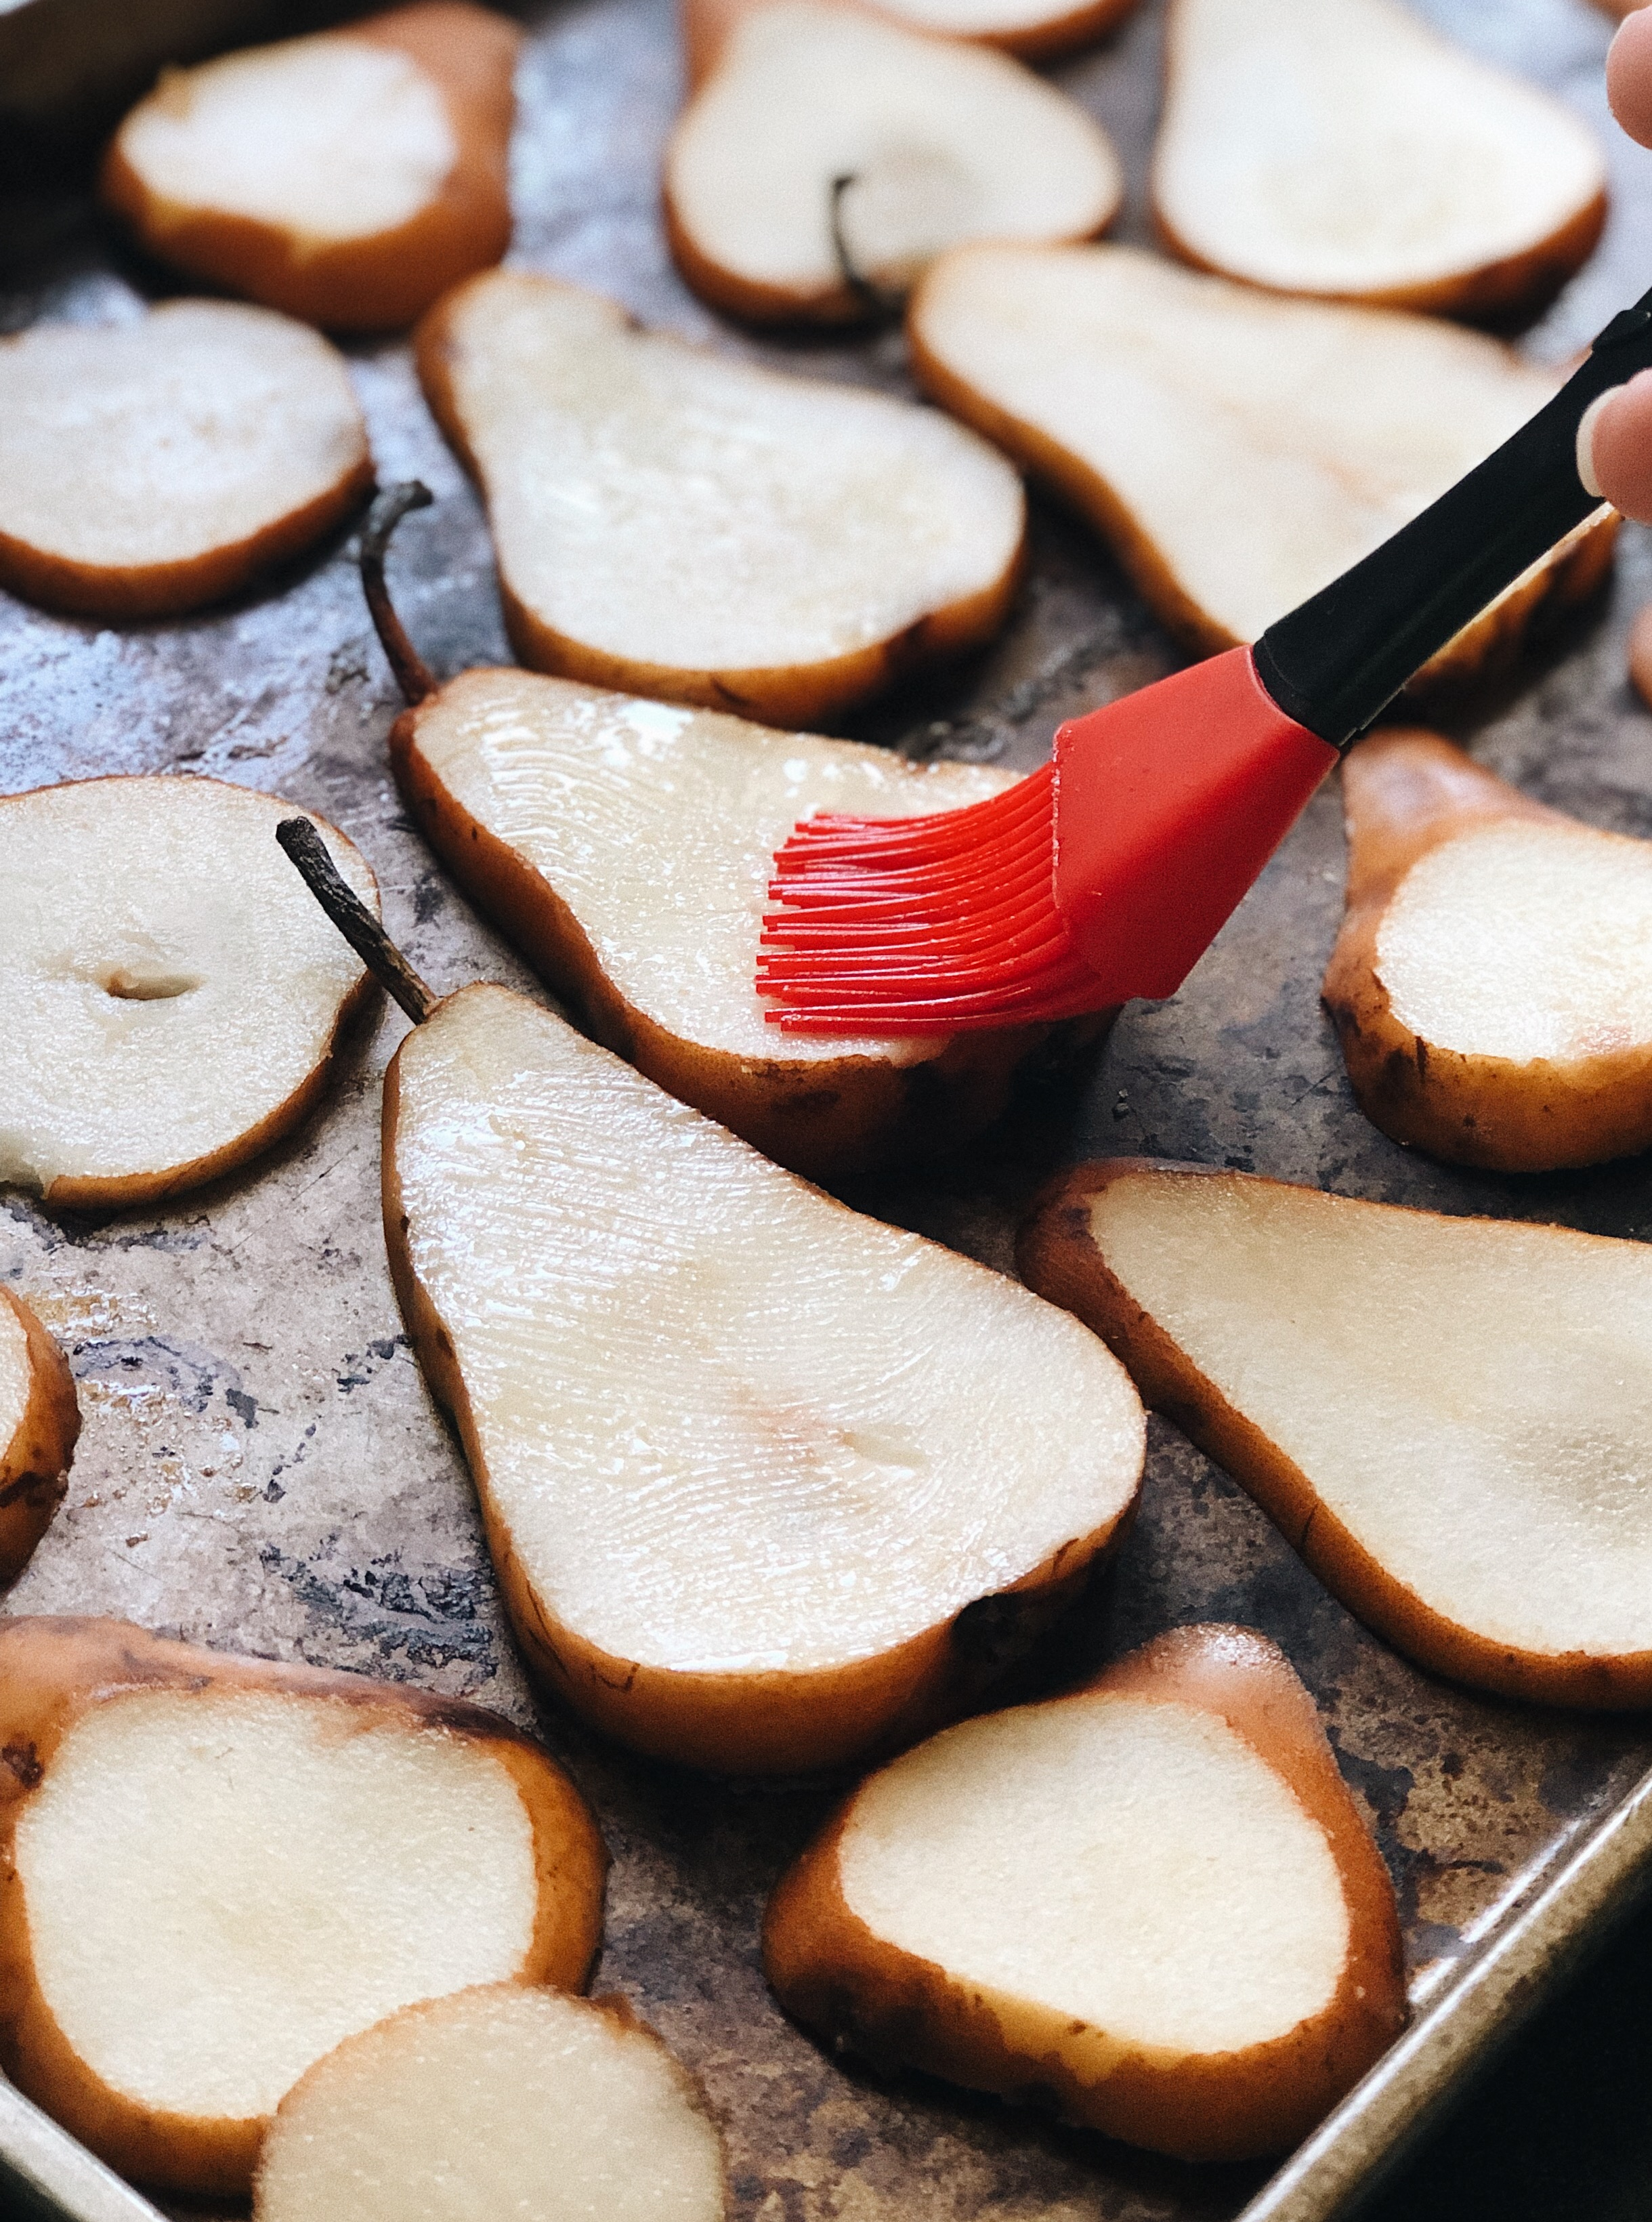 red brush topping pears with butter